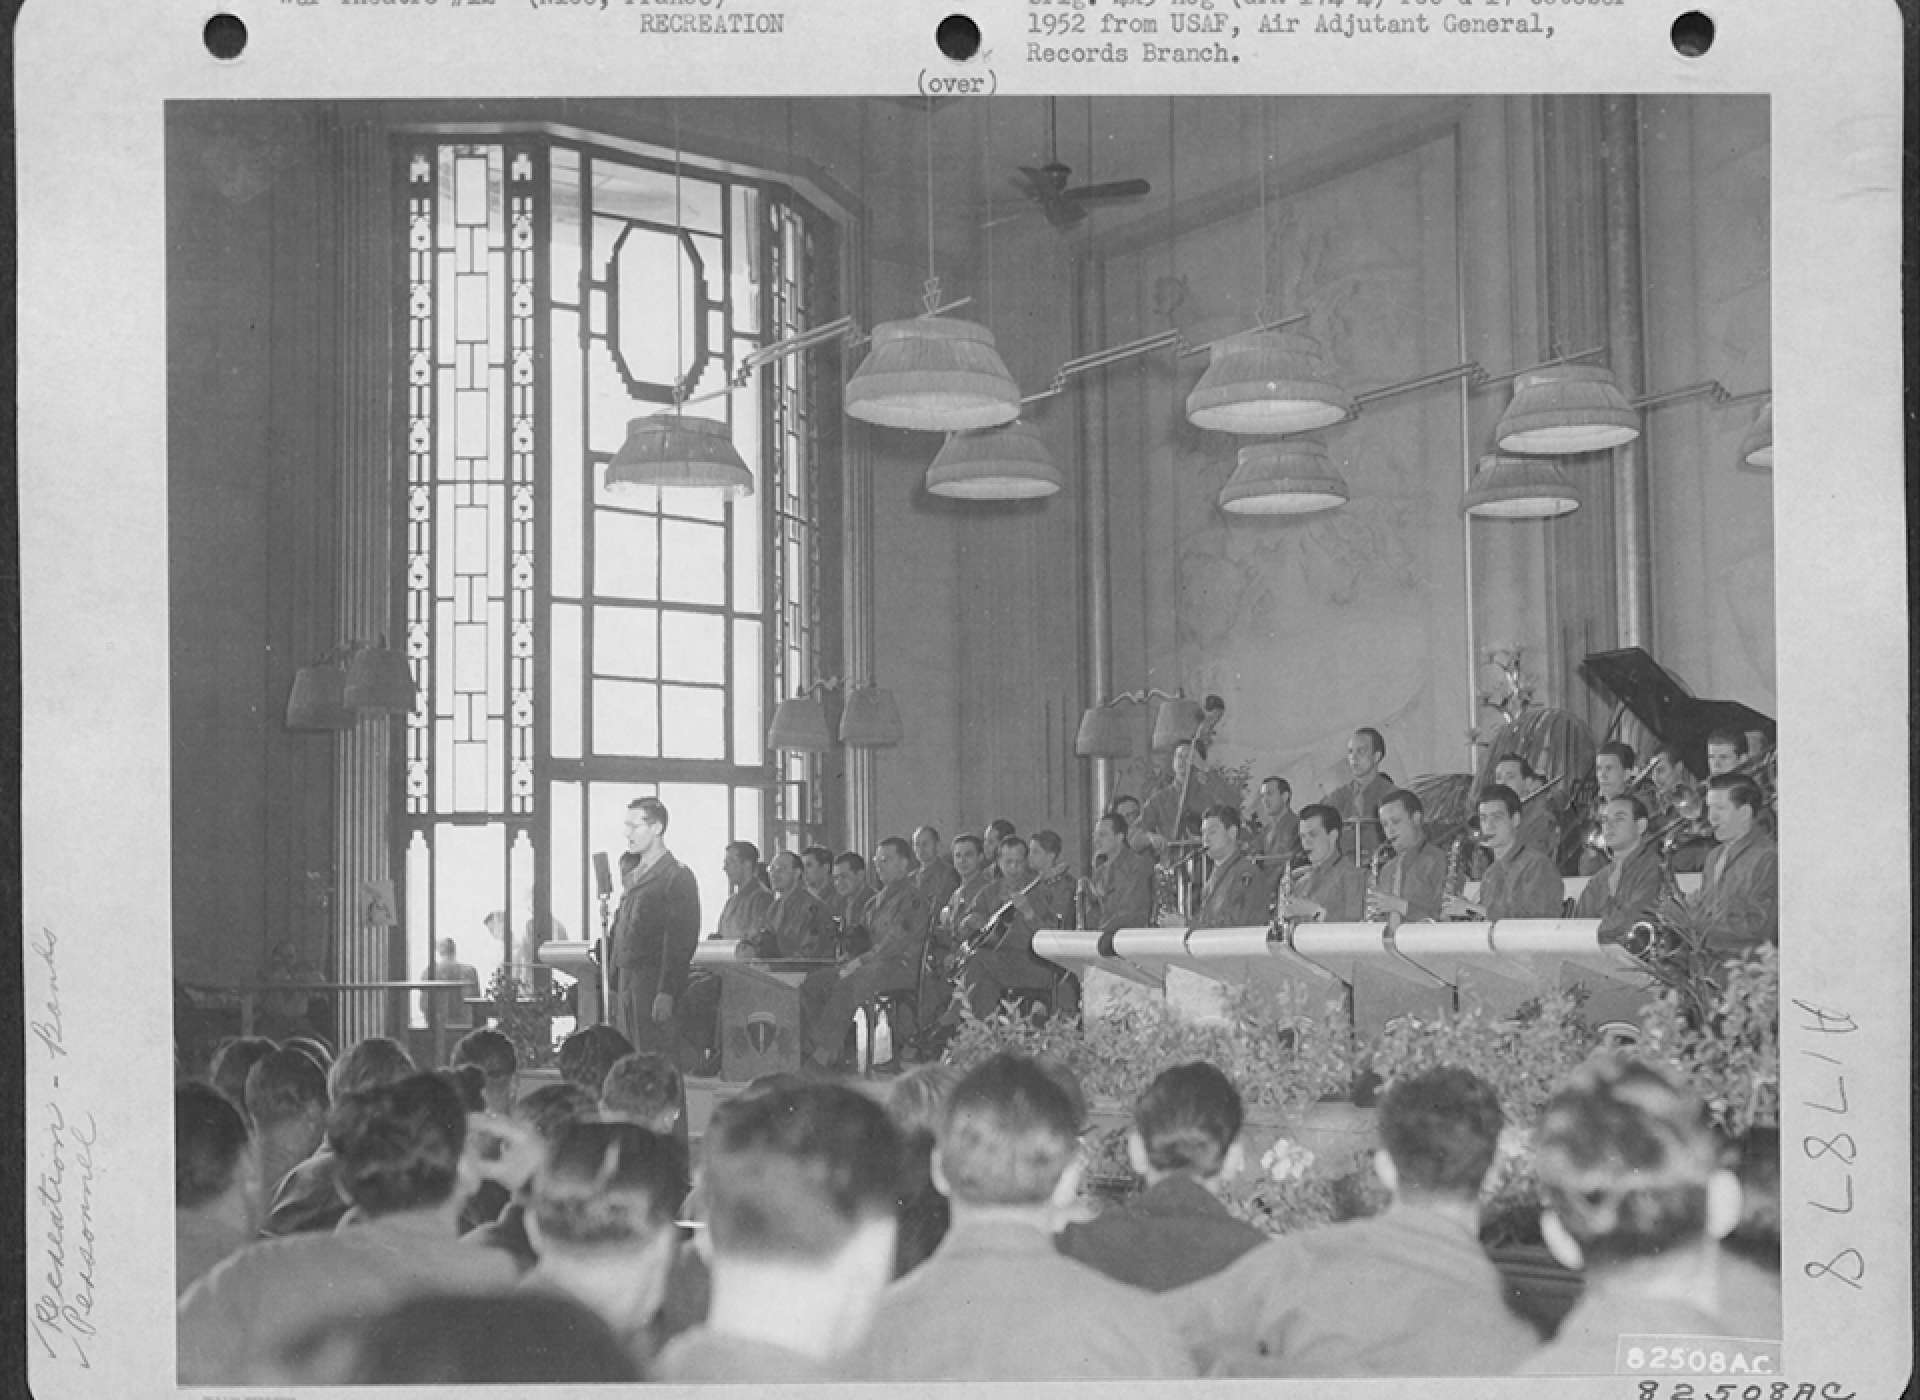 The Army Air Forces Band, directed by Ray MacKinley after Miller's disappearance, plays for GIs on leave in Nice, France, May 1945. US Air Force photograph.